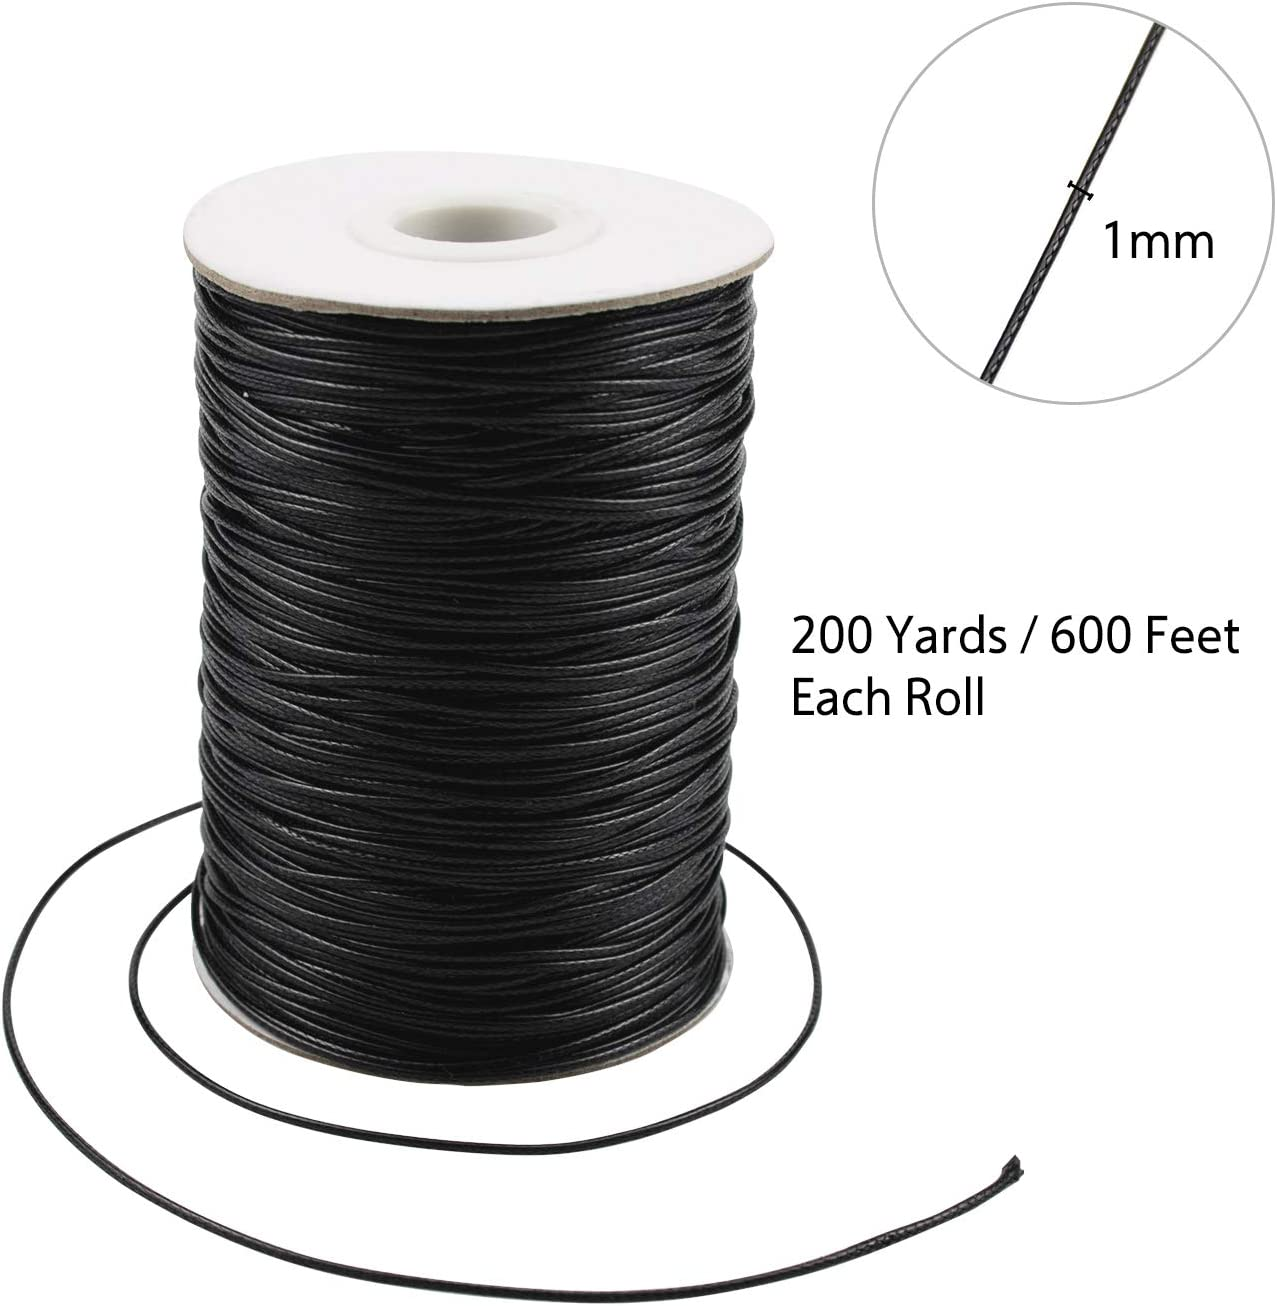 Foraineam 200 Yards 1mm Waxed Cotton Cord Thread Bracelet Necklace String for Jewelry Making Beading Crafting